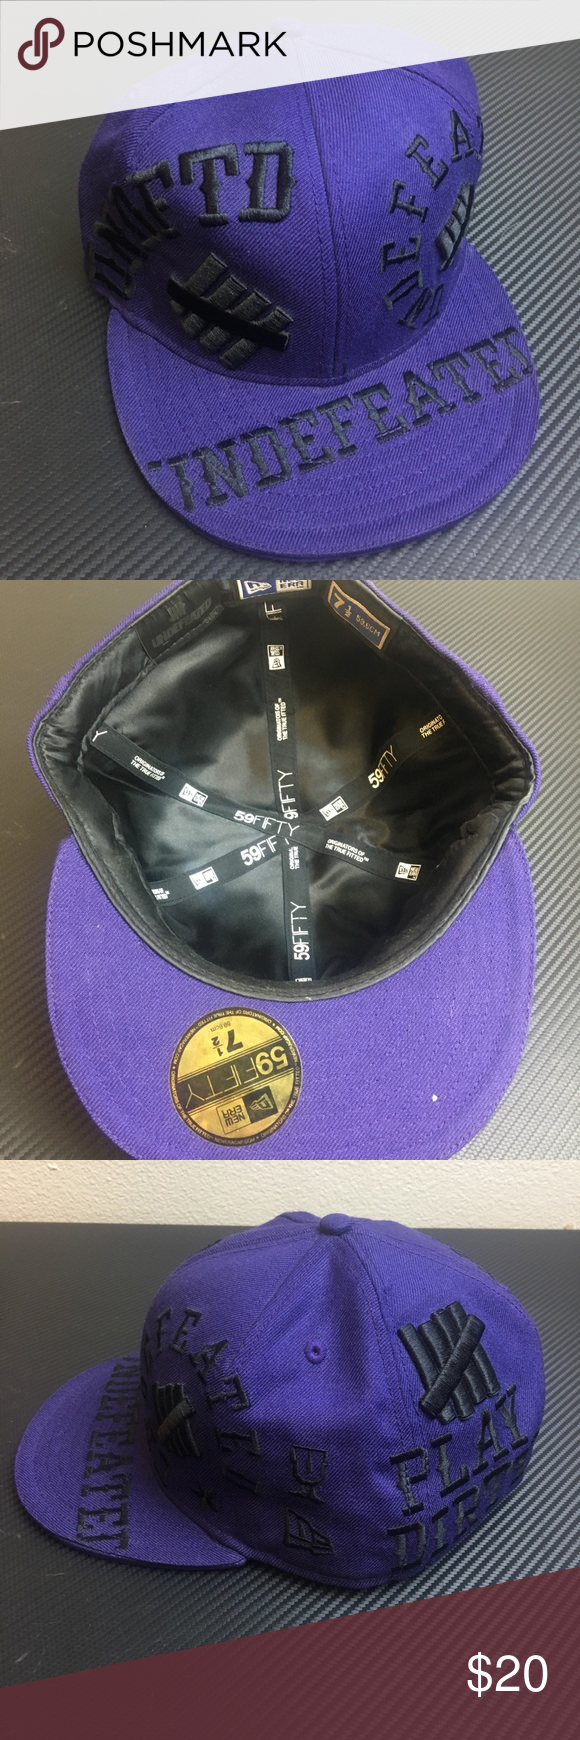 New Era X Undefeated Fitted Hat Size 7 1 2 Fitted Hats New Era Clothes Design